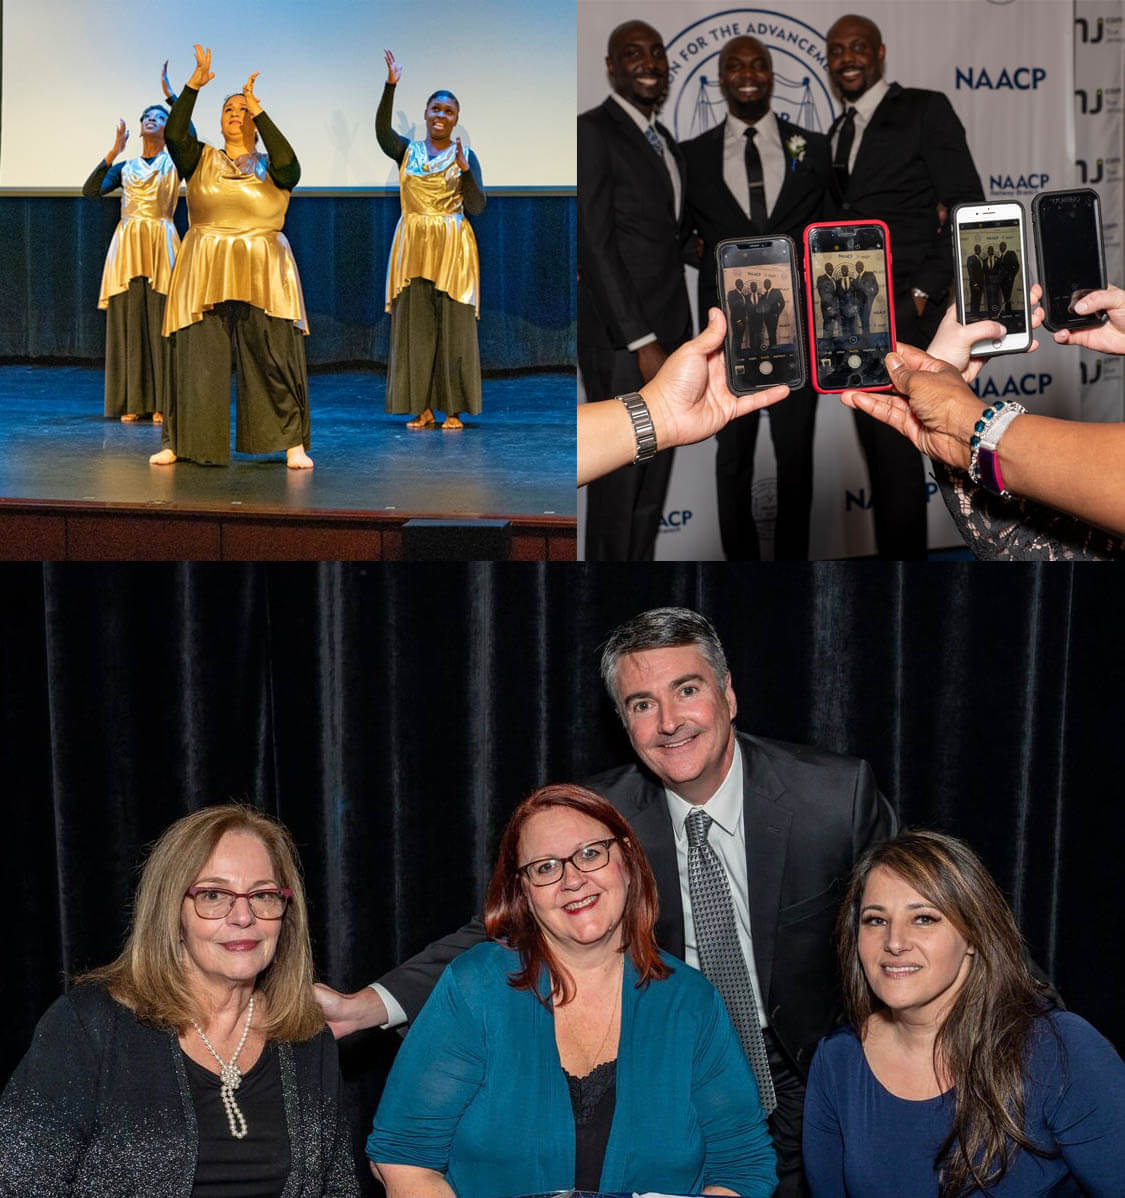 There are three pictures. In the upper left, three women are performing a dance. In the upper right, three men are posing in front of the NAACP logo. At the bottom, a group of three business people (one man and three woman) are seated and smiling.